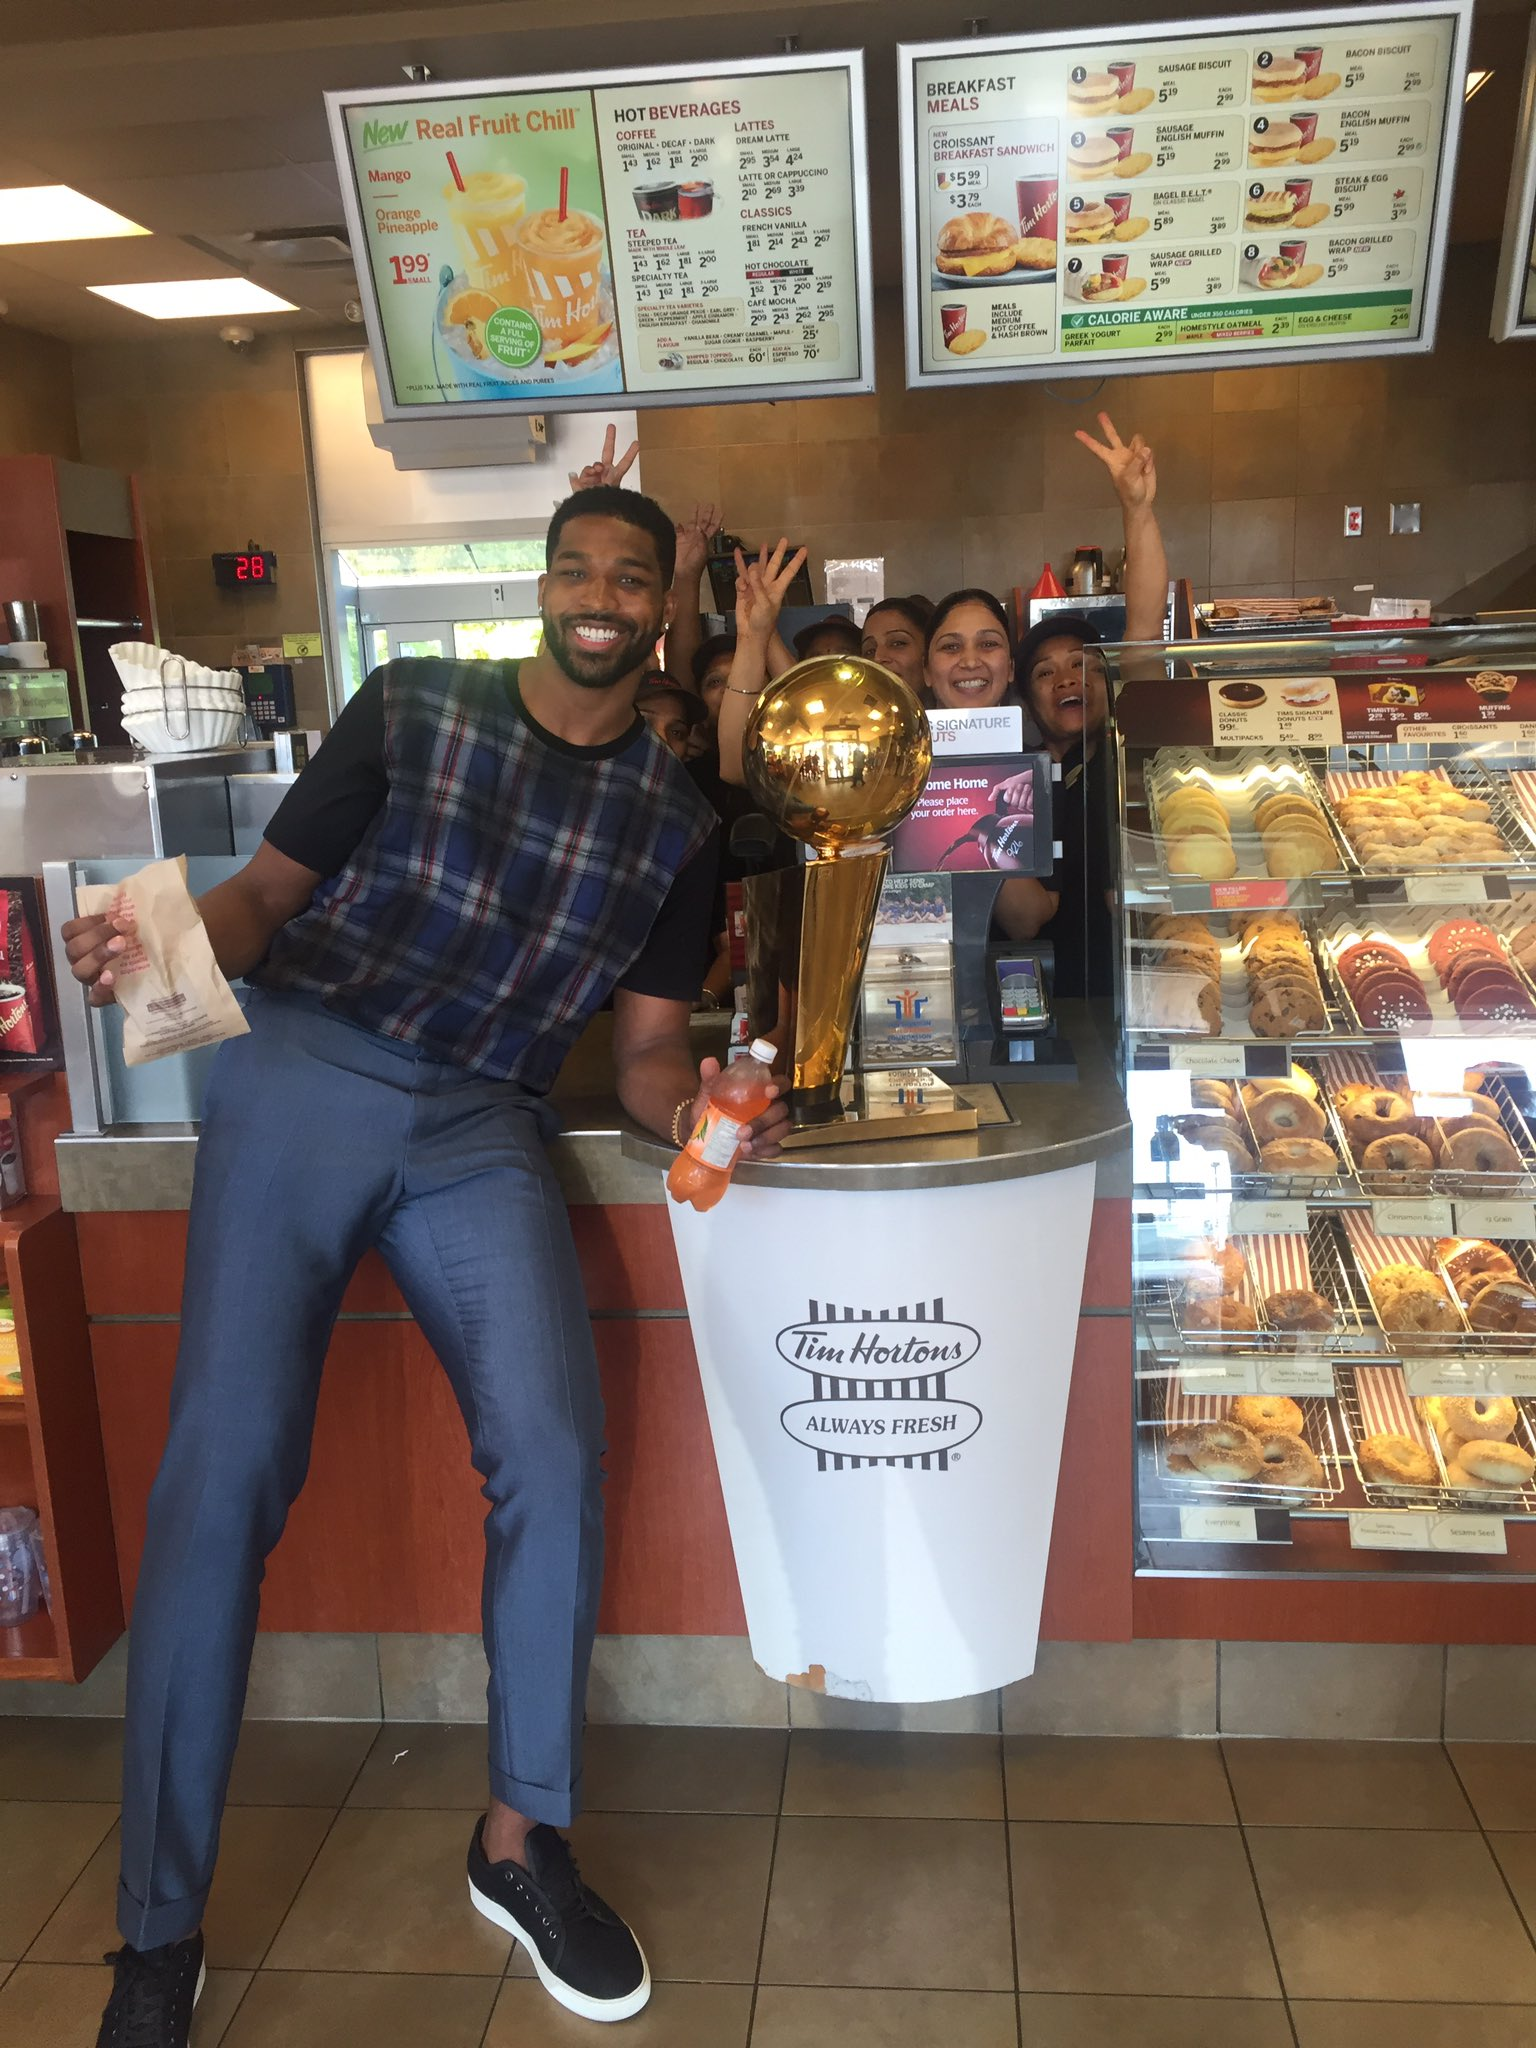 I saw Sidney Crosby brought the Stanley Cup to @timhortons so only right I brought Larry!! ���� https://t.co/Rac0JT9KcB